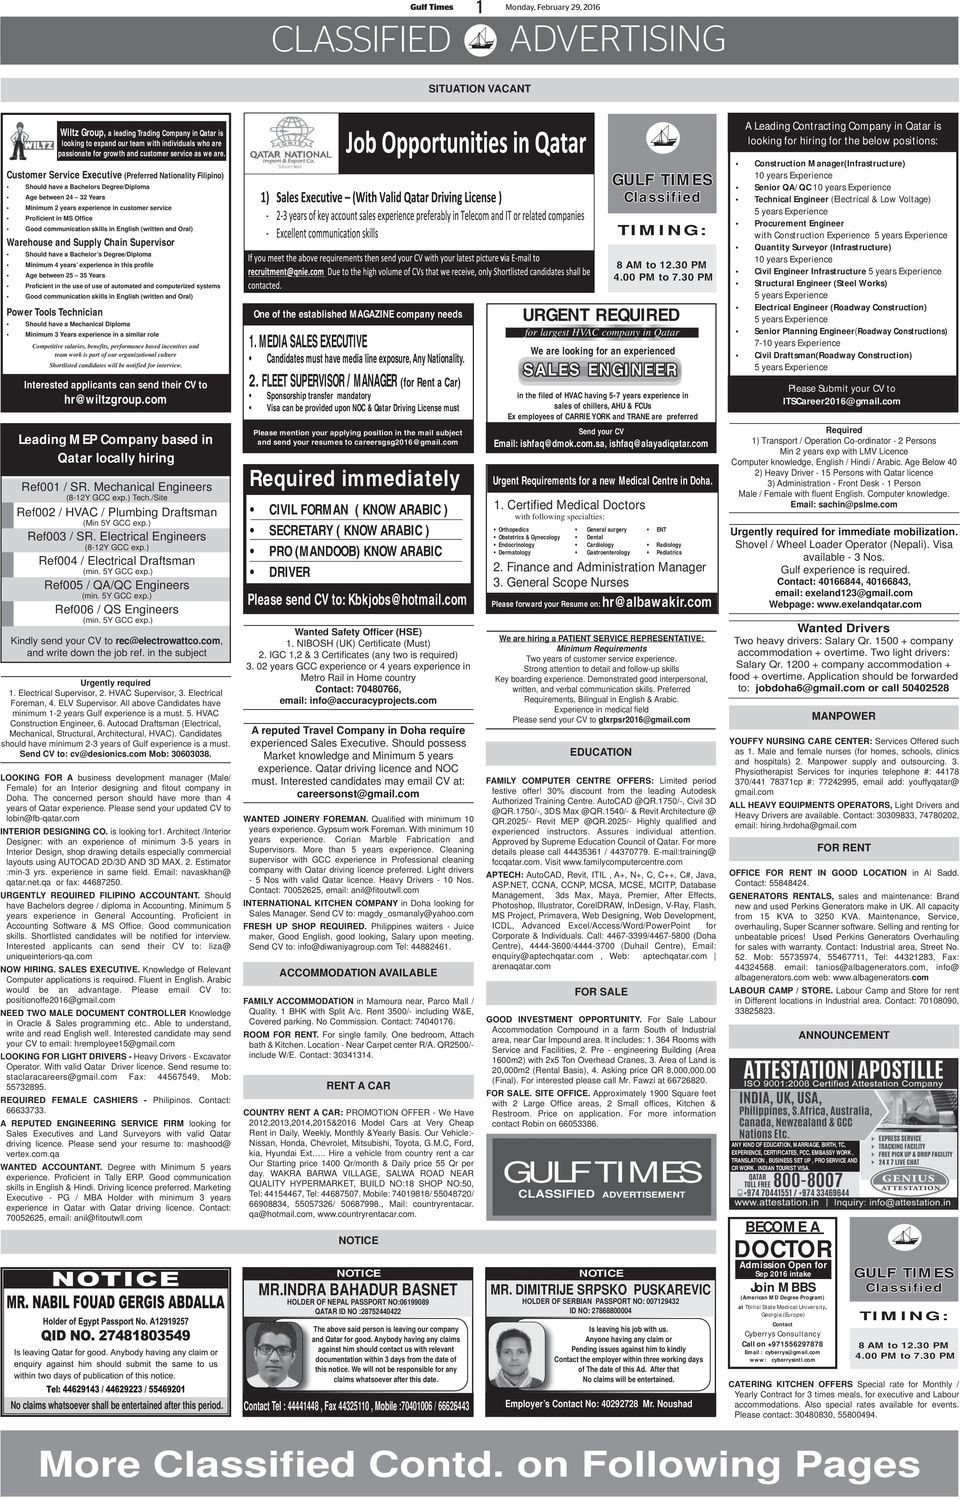 Gulf Times Situation Vacant Please Send Cv To Please Forward Your